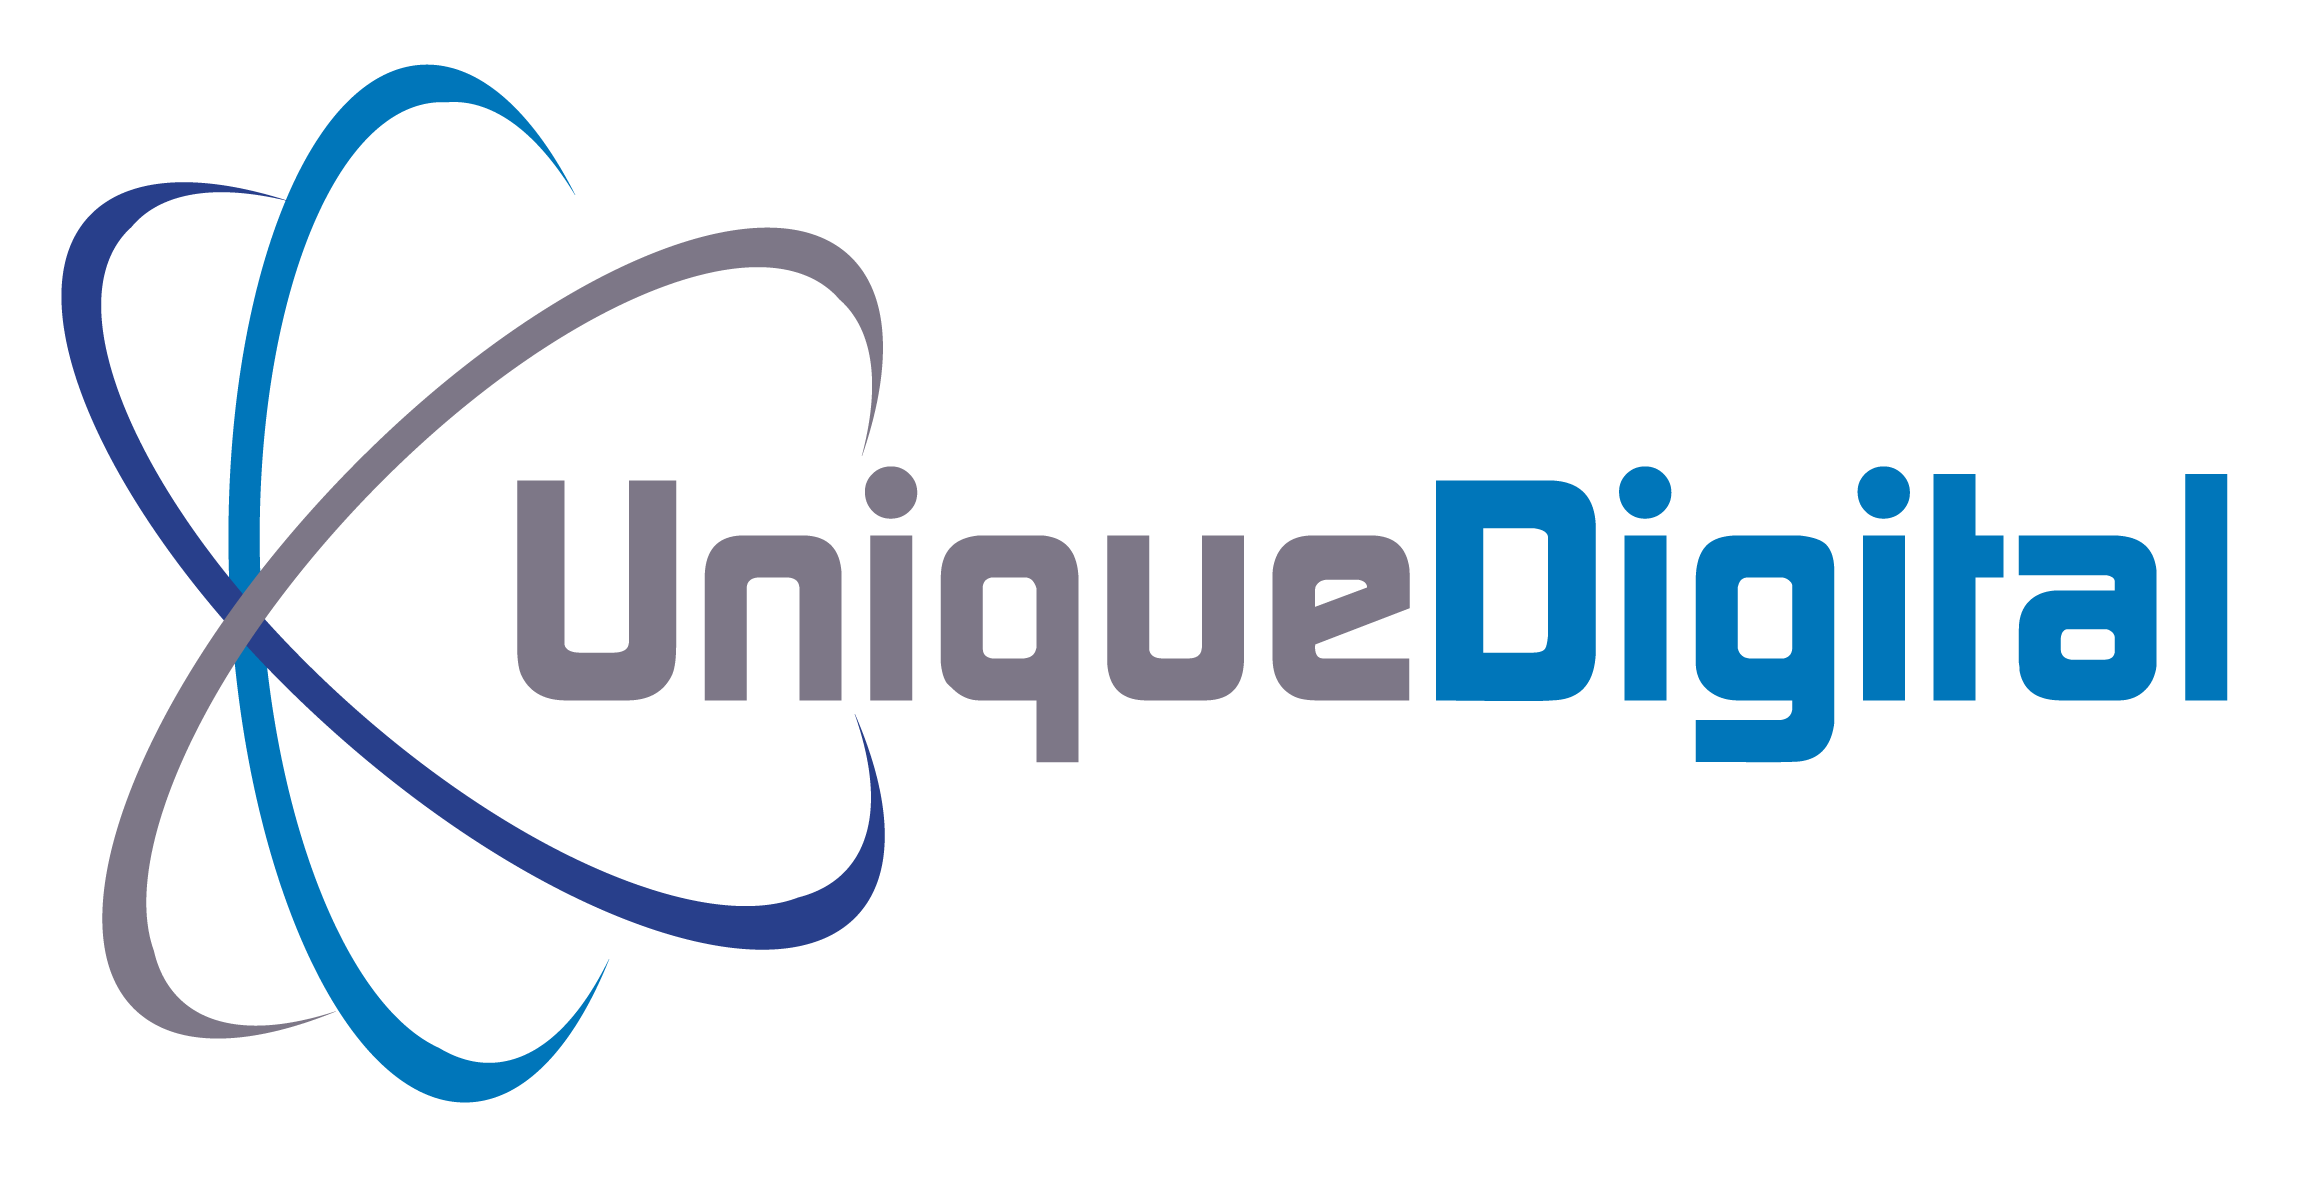 www.uniquedigital.com